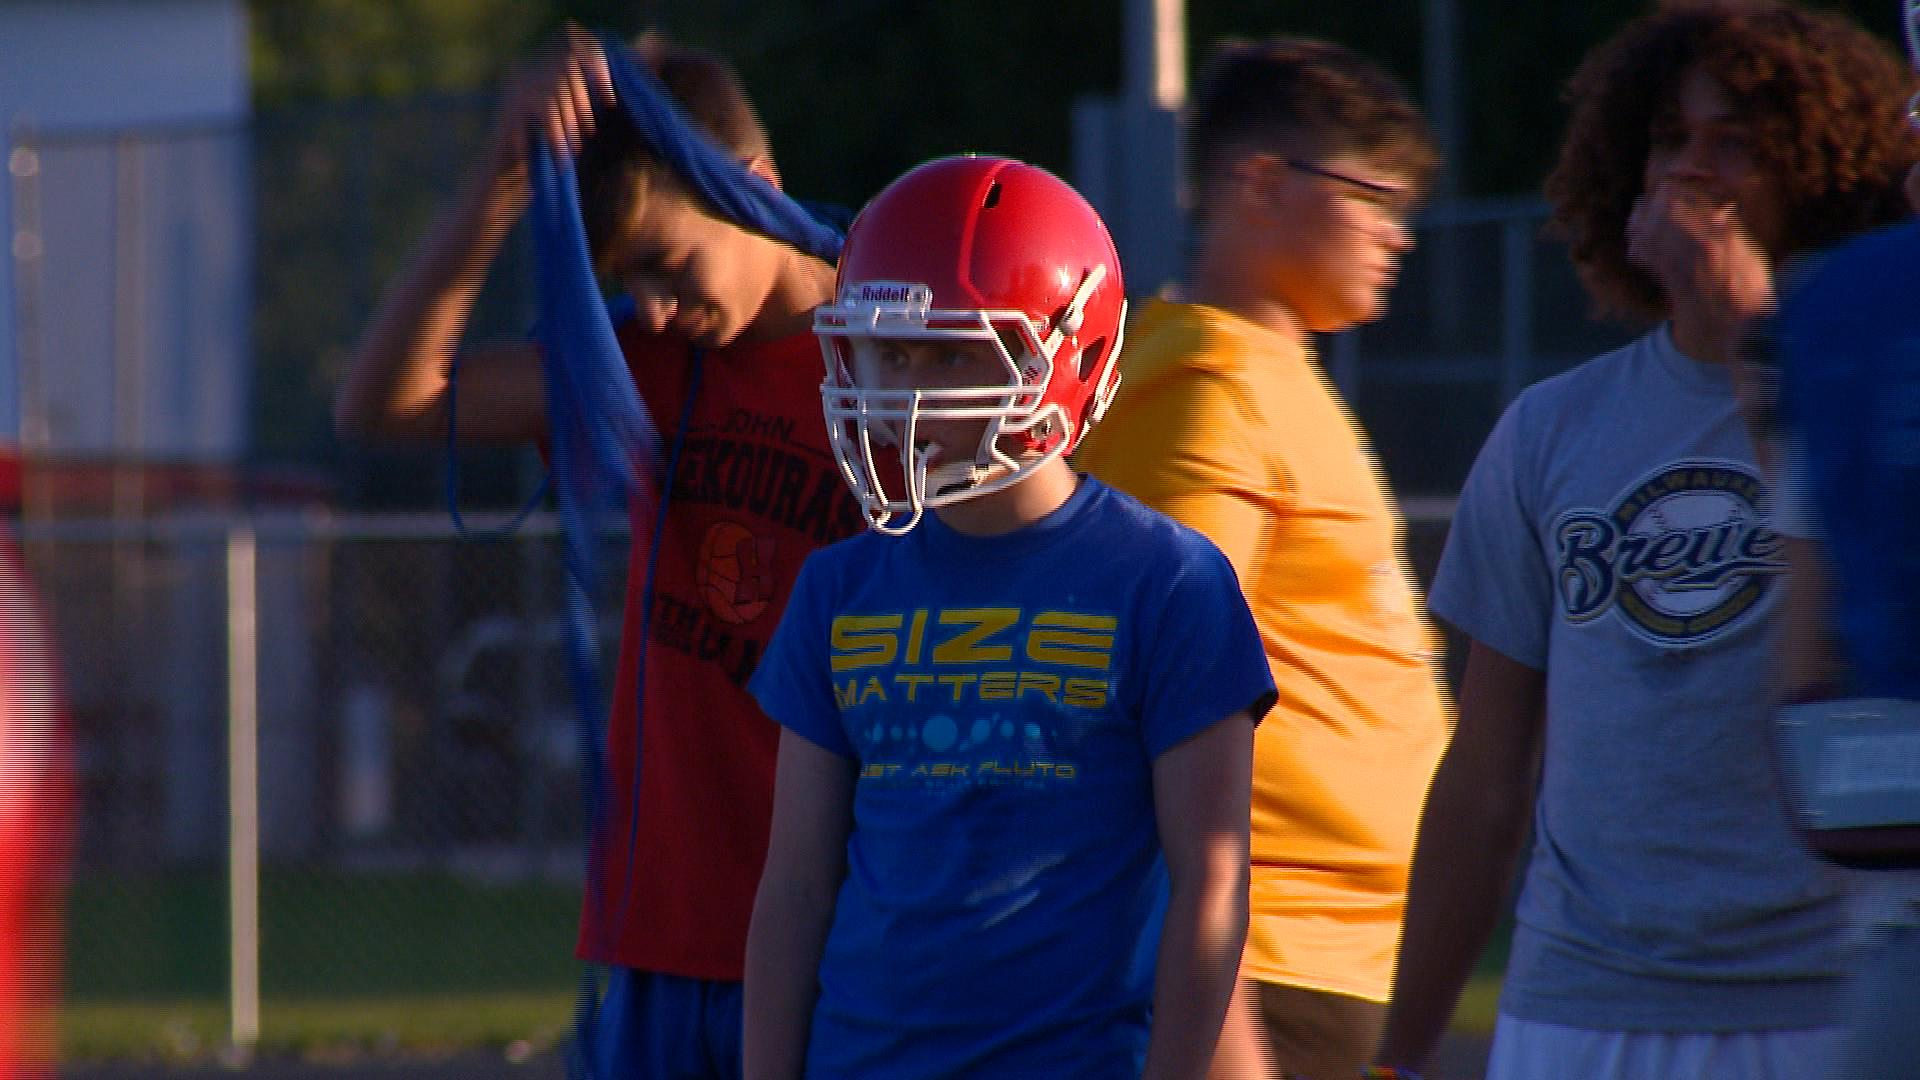 Sturgeon Bay has moved to 8-man football this season. (WLUK)